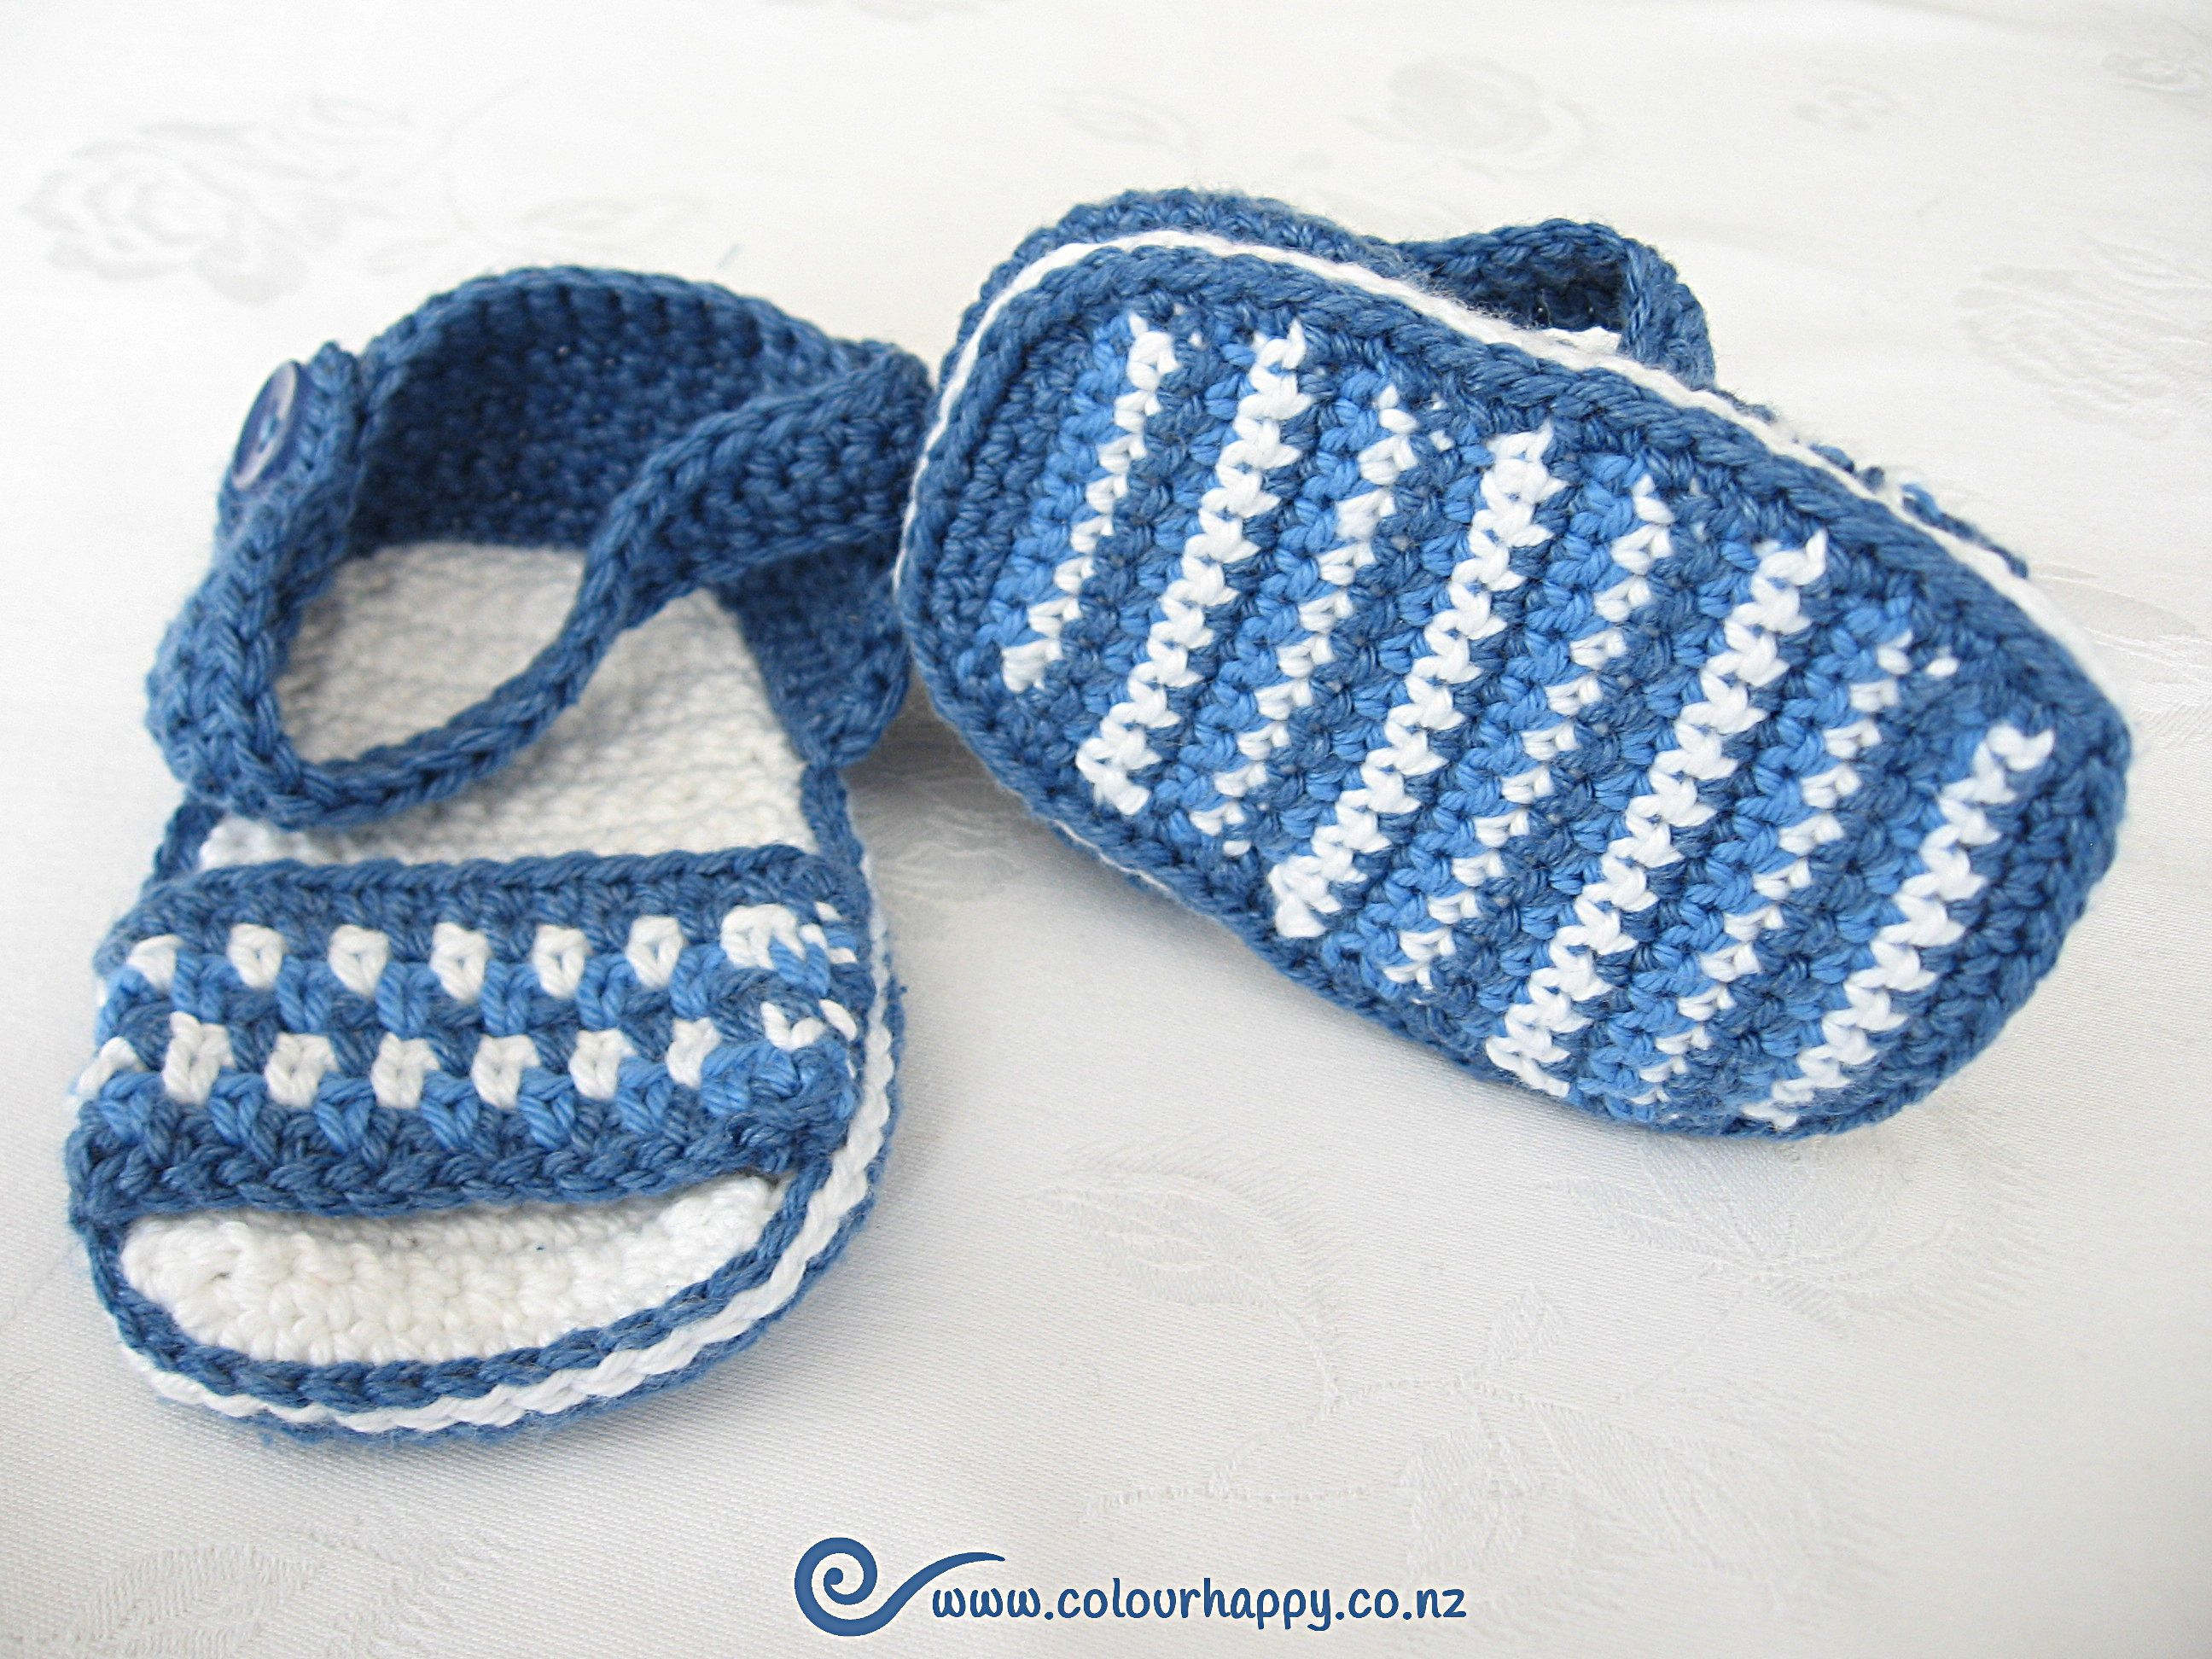 6093d5ce0fb2b Blue & White Crochet Baby Sandals ♥Made by Colour Happy / Adele ...